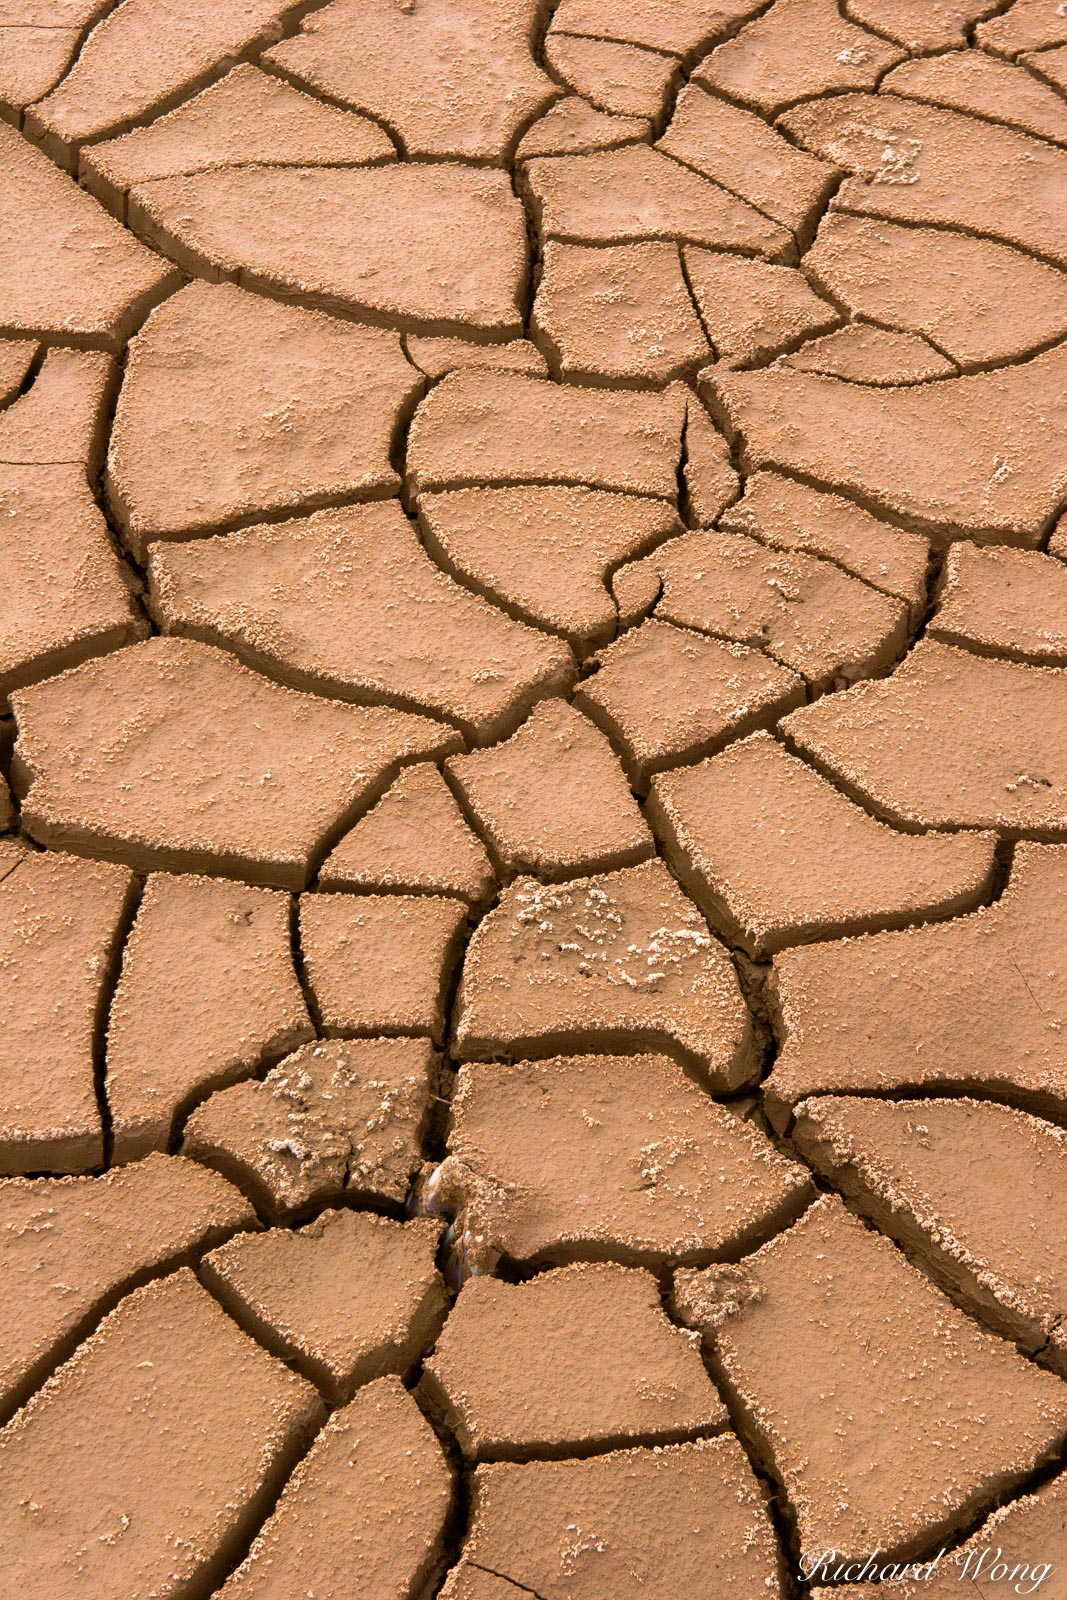 Dry Mud Cracks, Bombay Beach, California, photo, photo